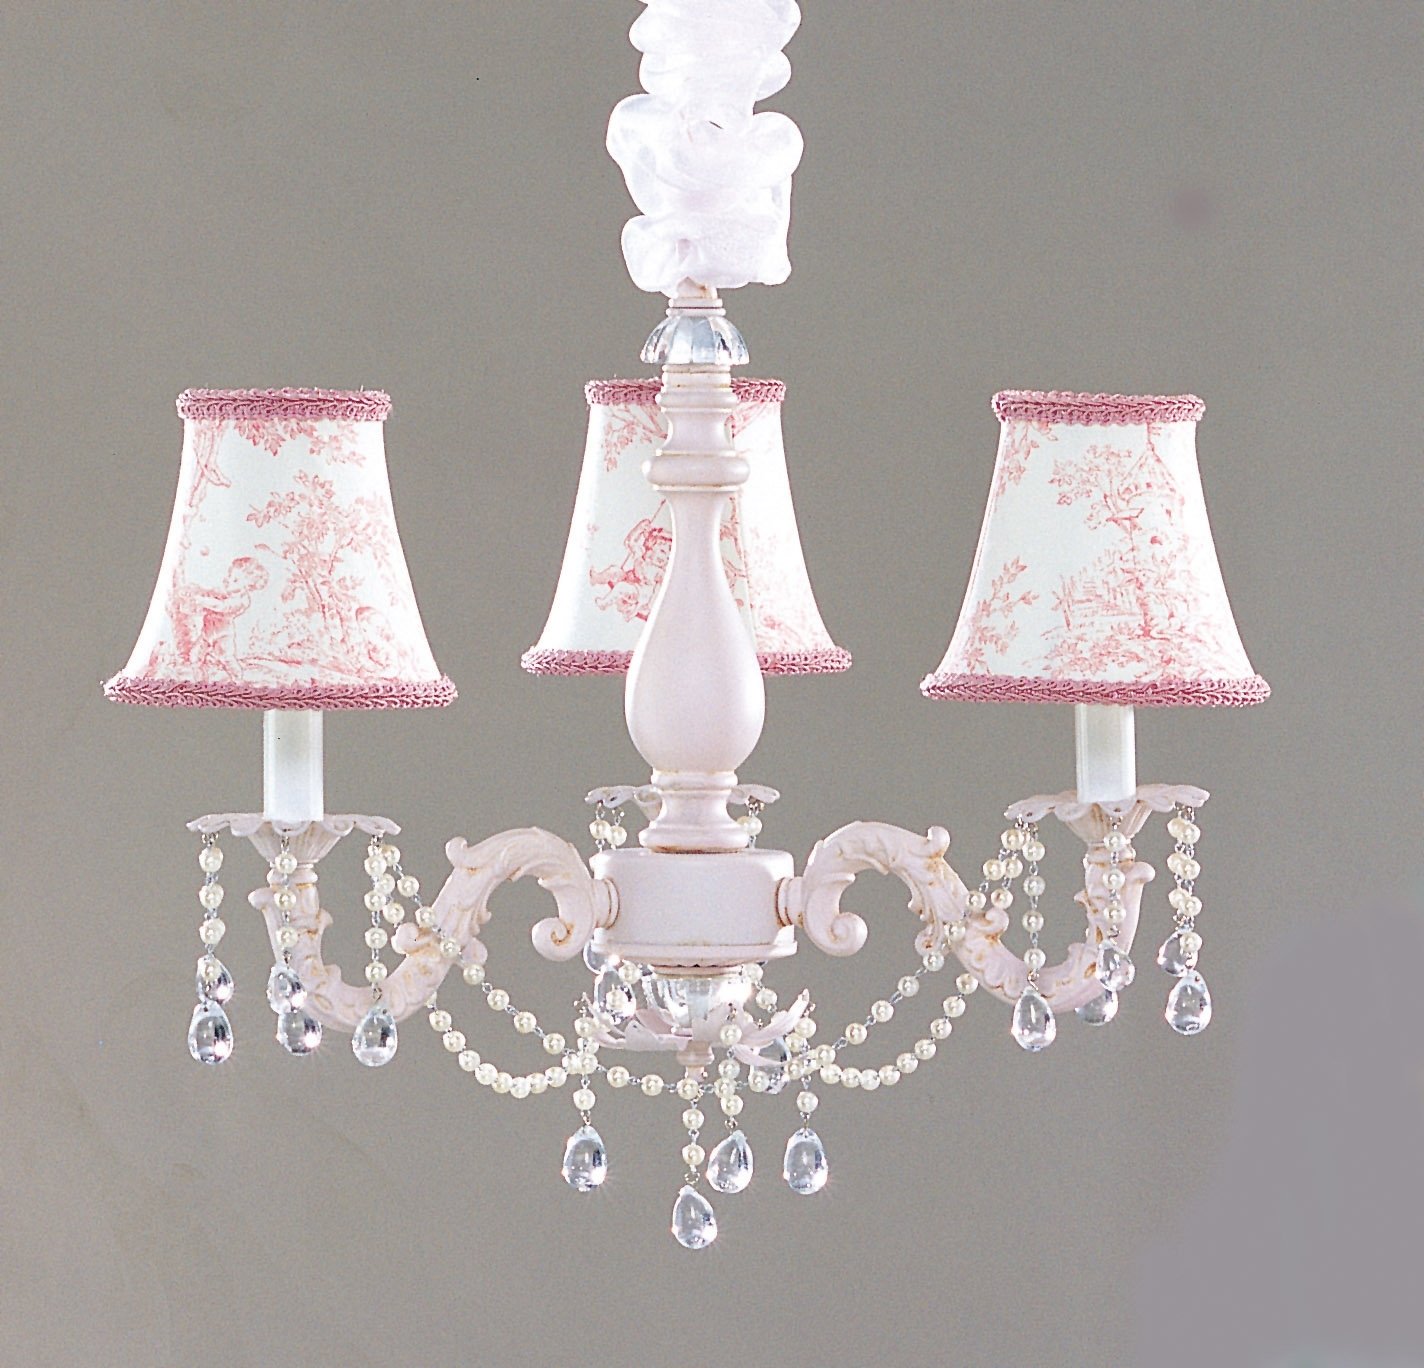 Small Shabby Chic Chandelier Throughout Latest Lamp Chandelier Shabby Chic – Closdurocnoir (View 8 of 15)